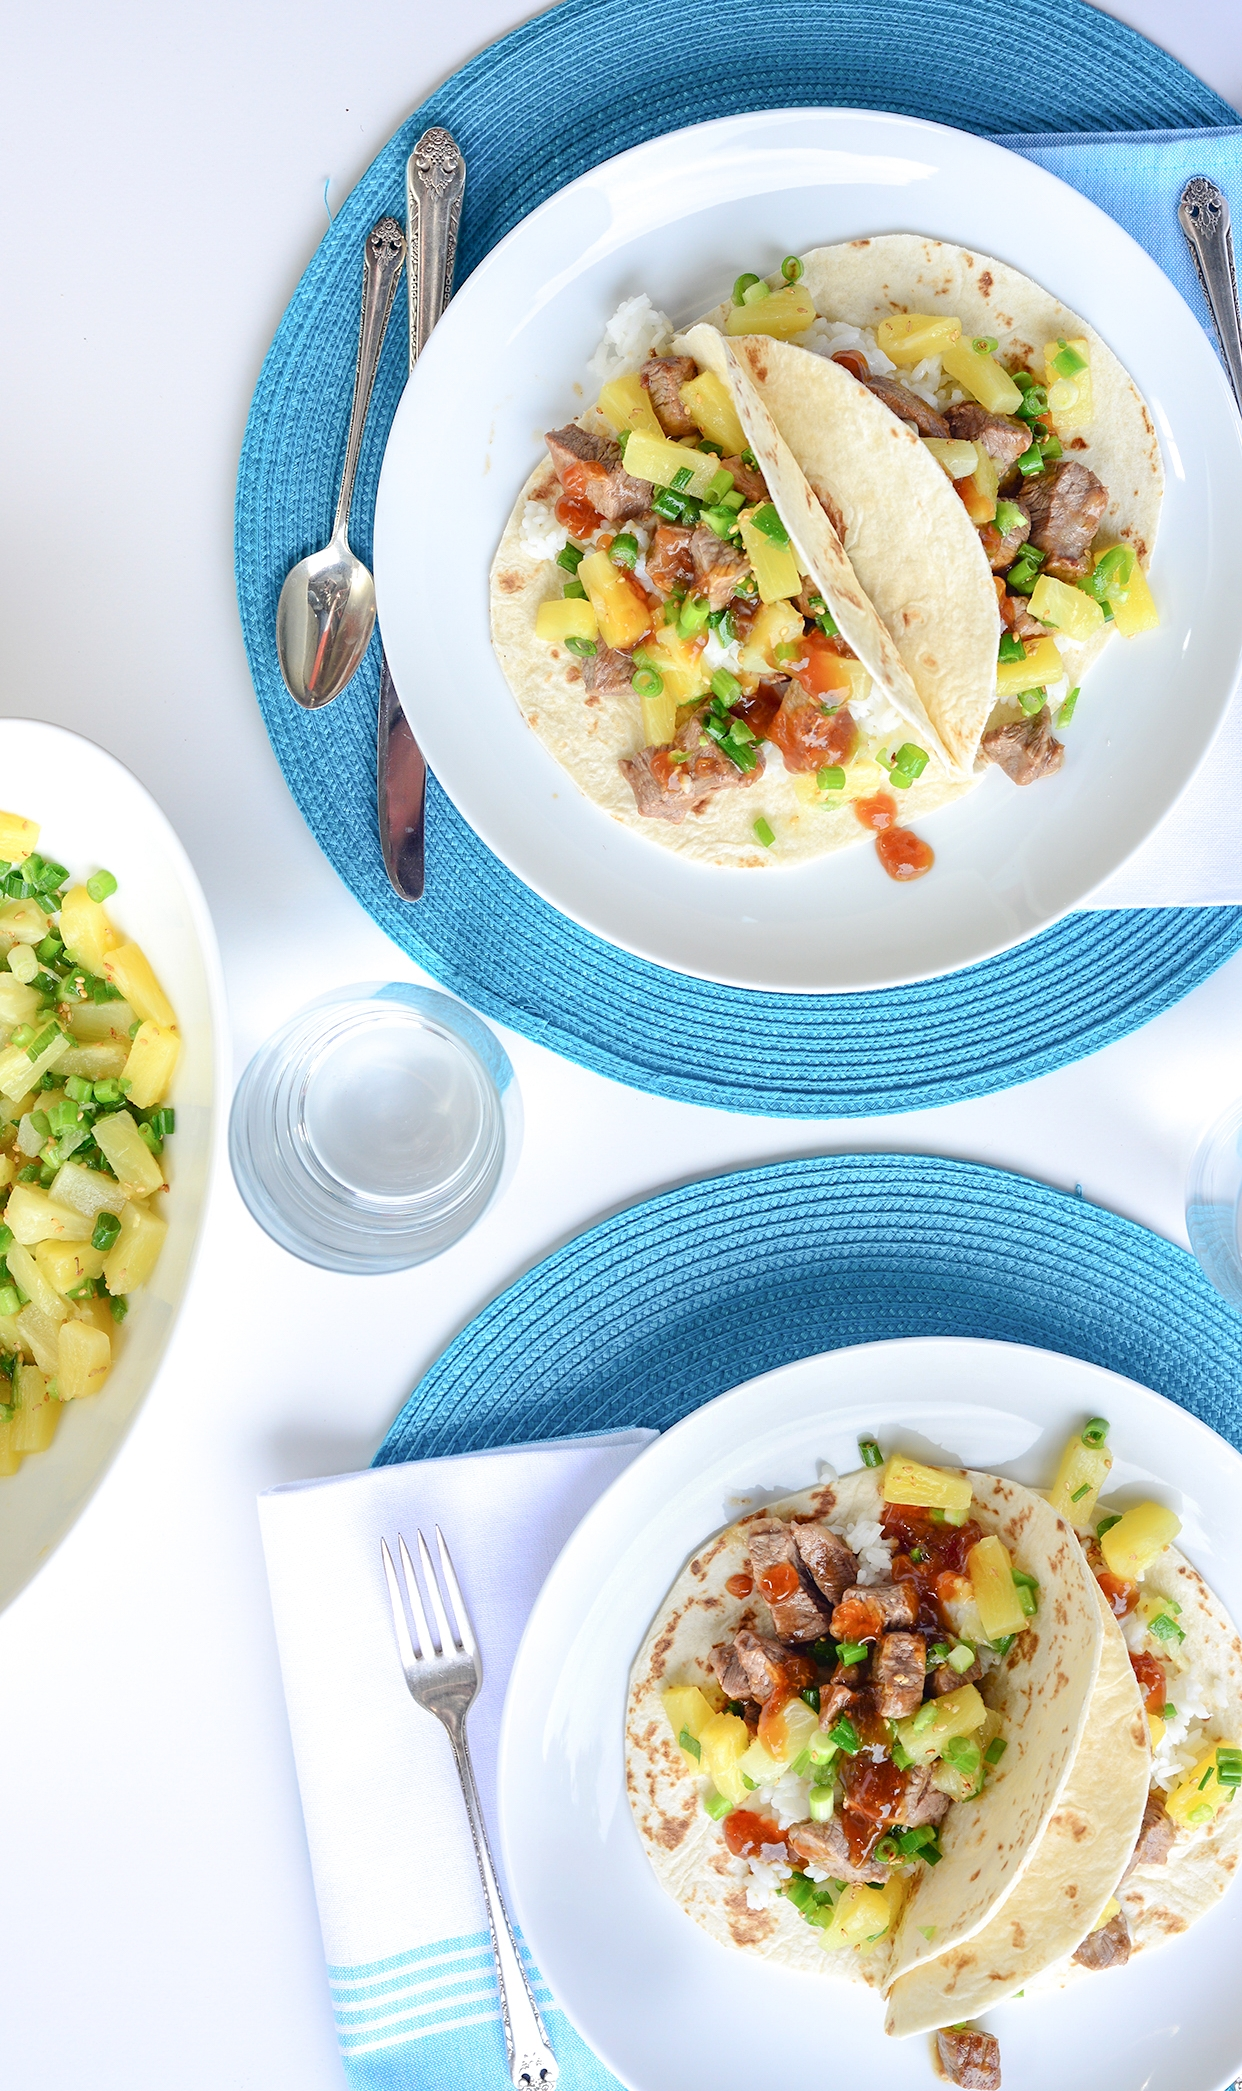 Teriyaki Tacos with Pineapple Salsa